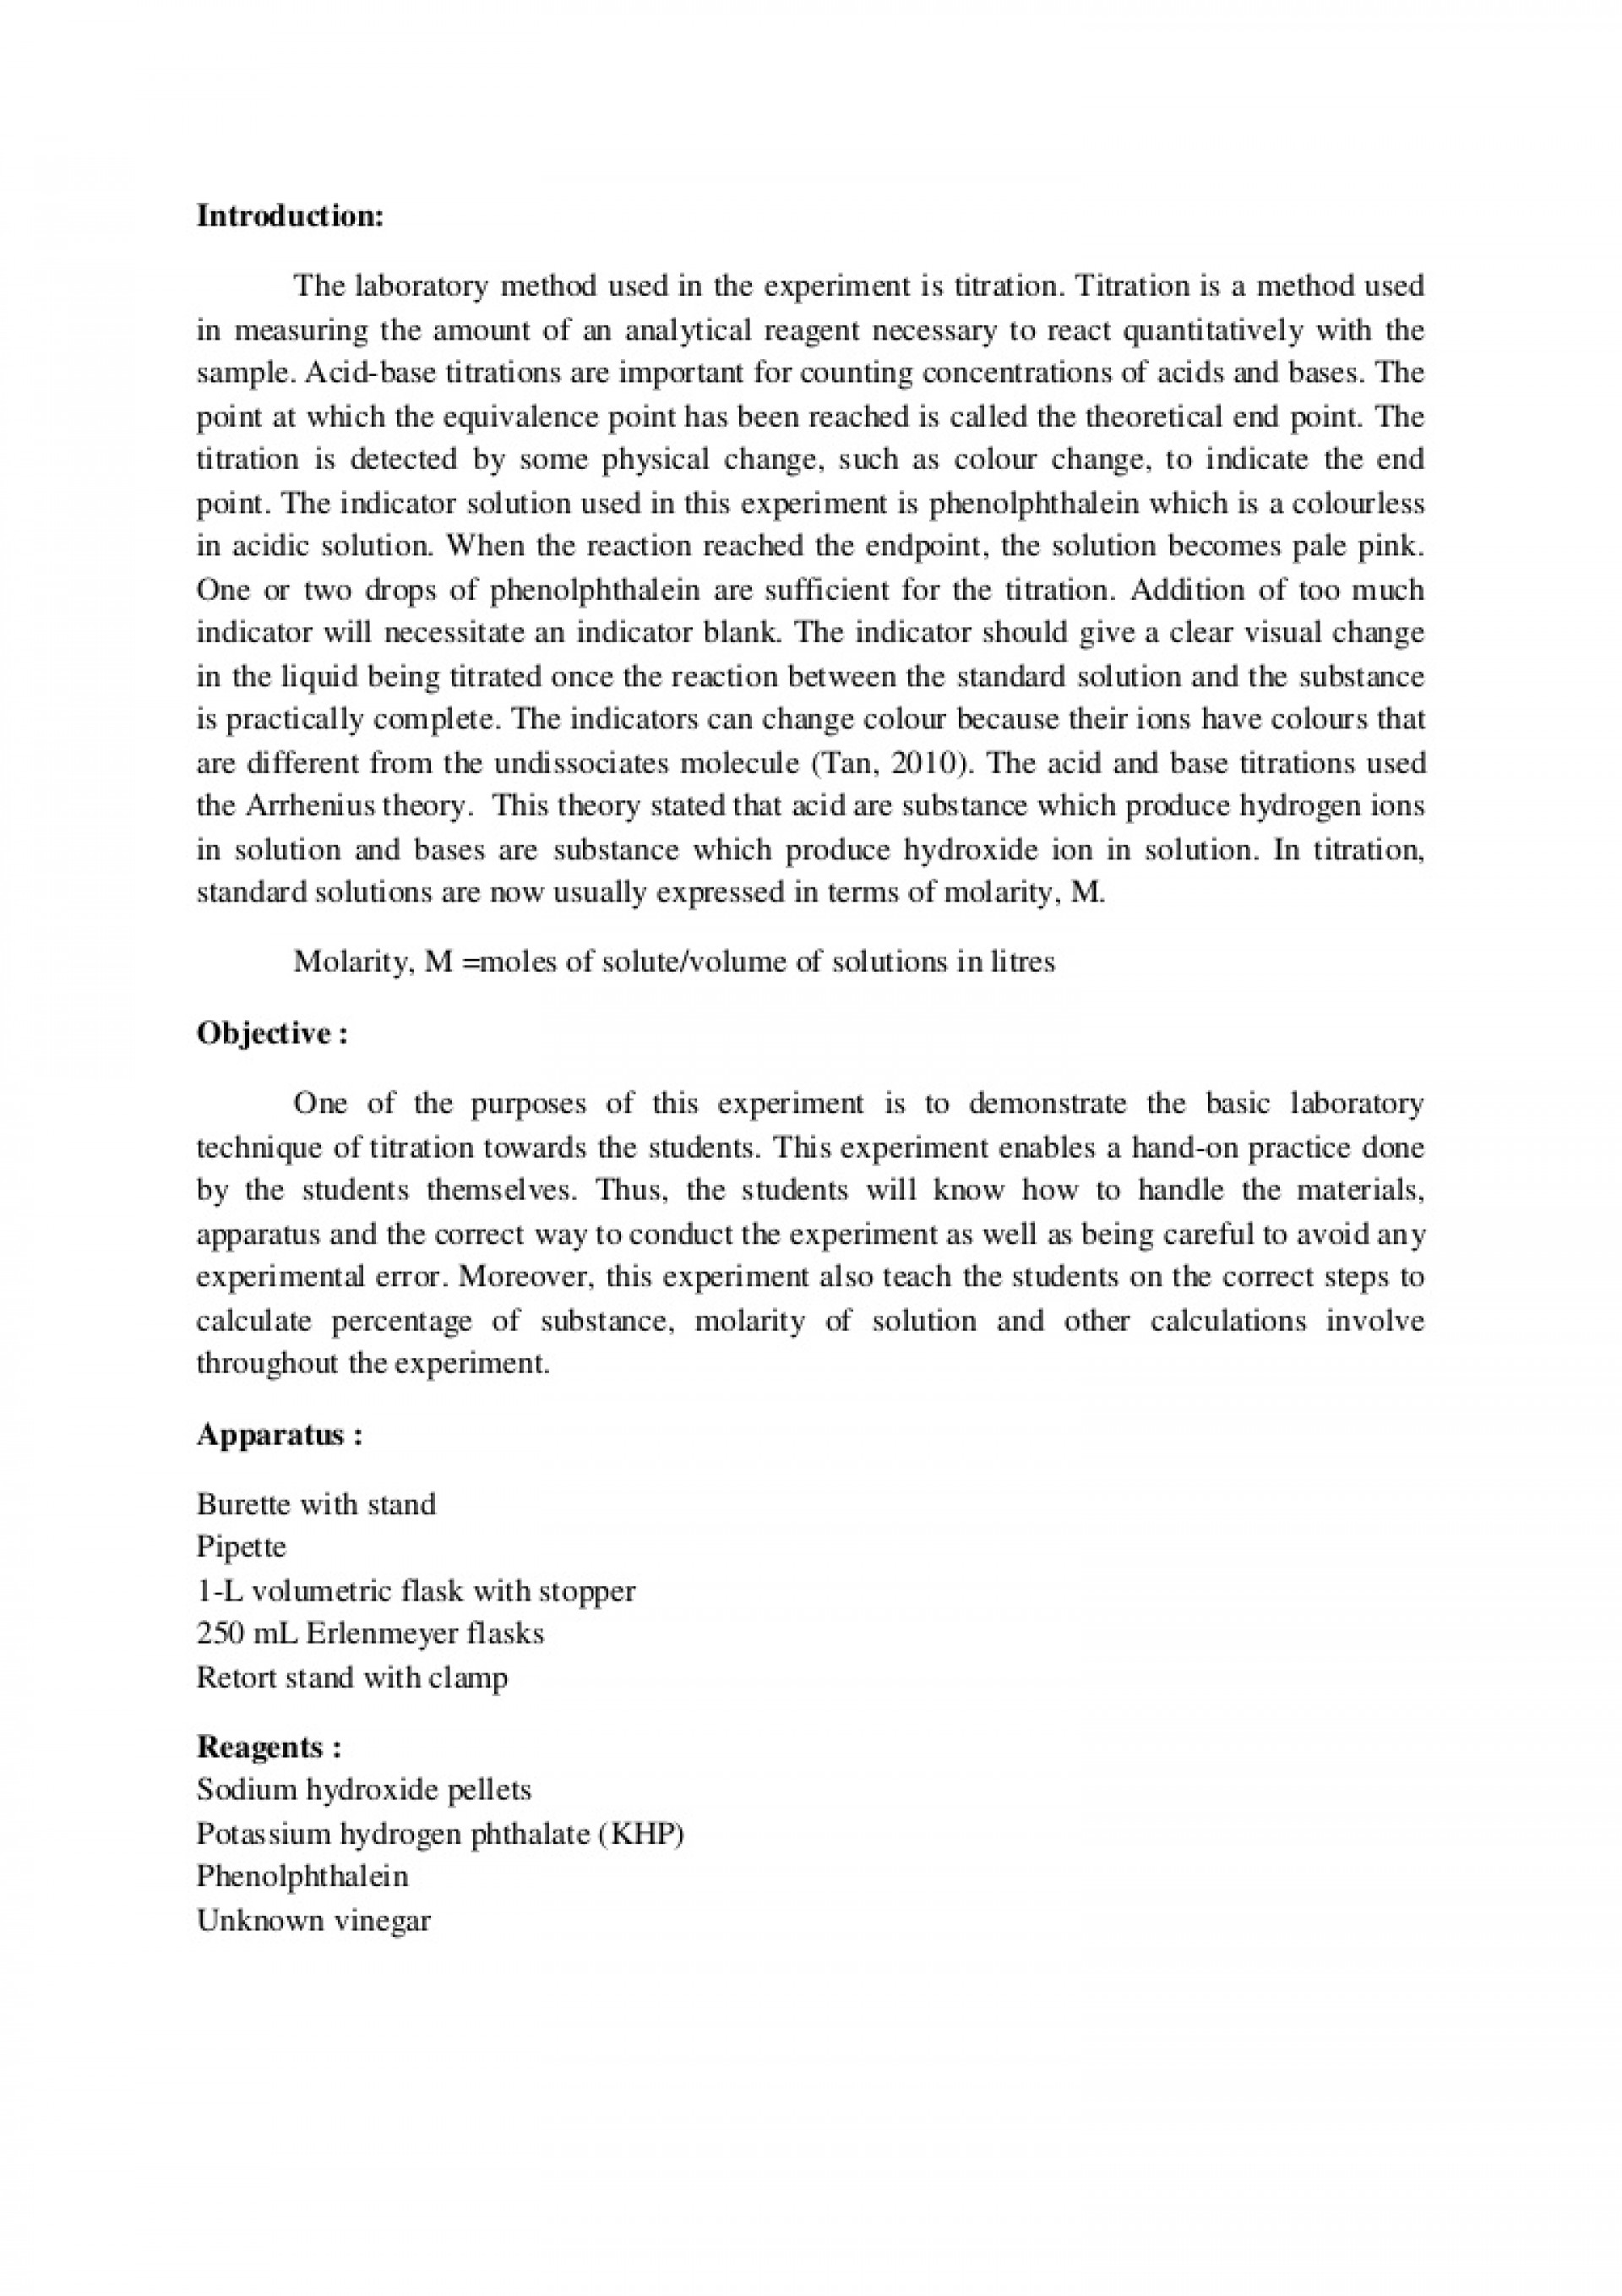 020 Determination Essay Chemistryreportfinal Phpapp01 Thumbnail Remarkable Titles Outline In Hindi 1920